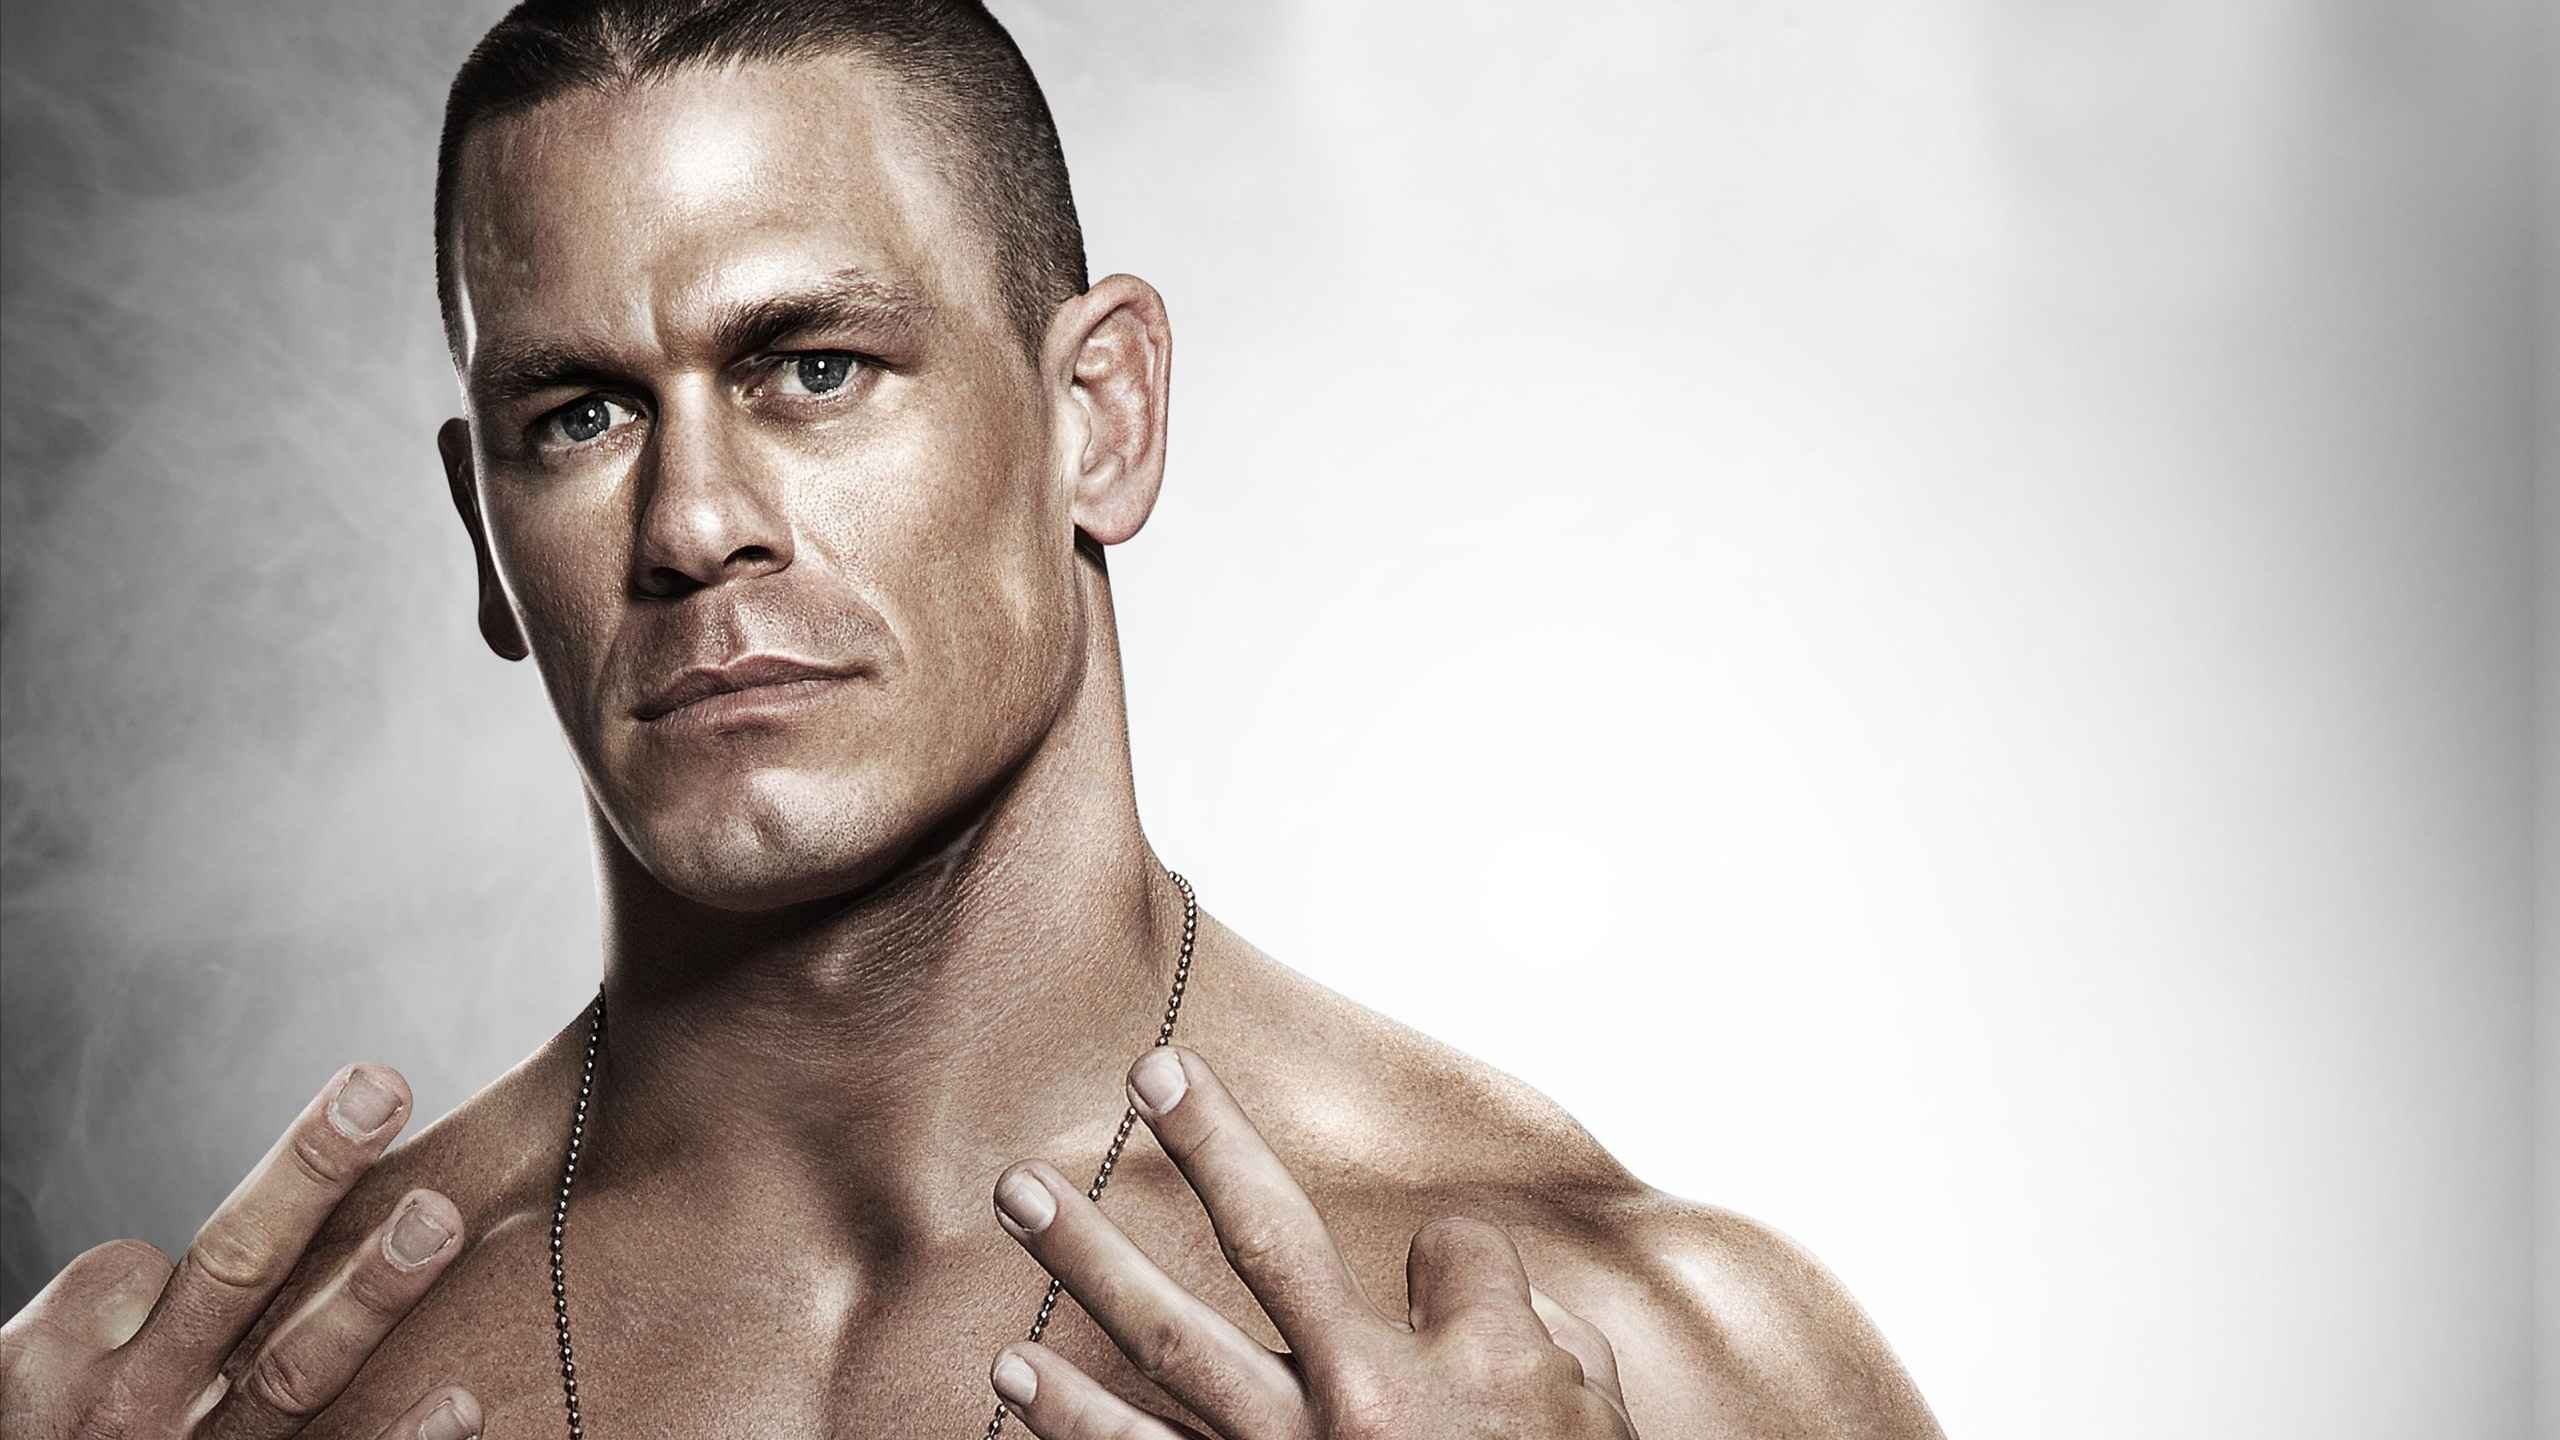 John Cena Body Wallpapers 2016 - Wallpaper Cave